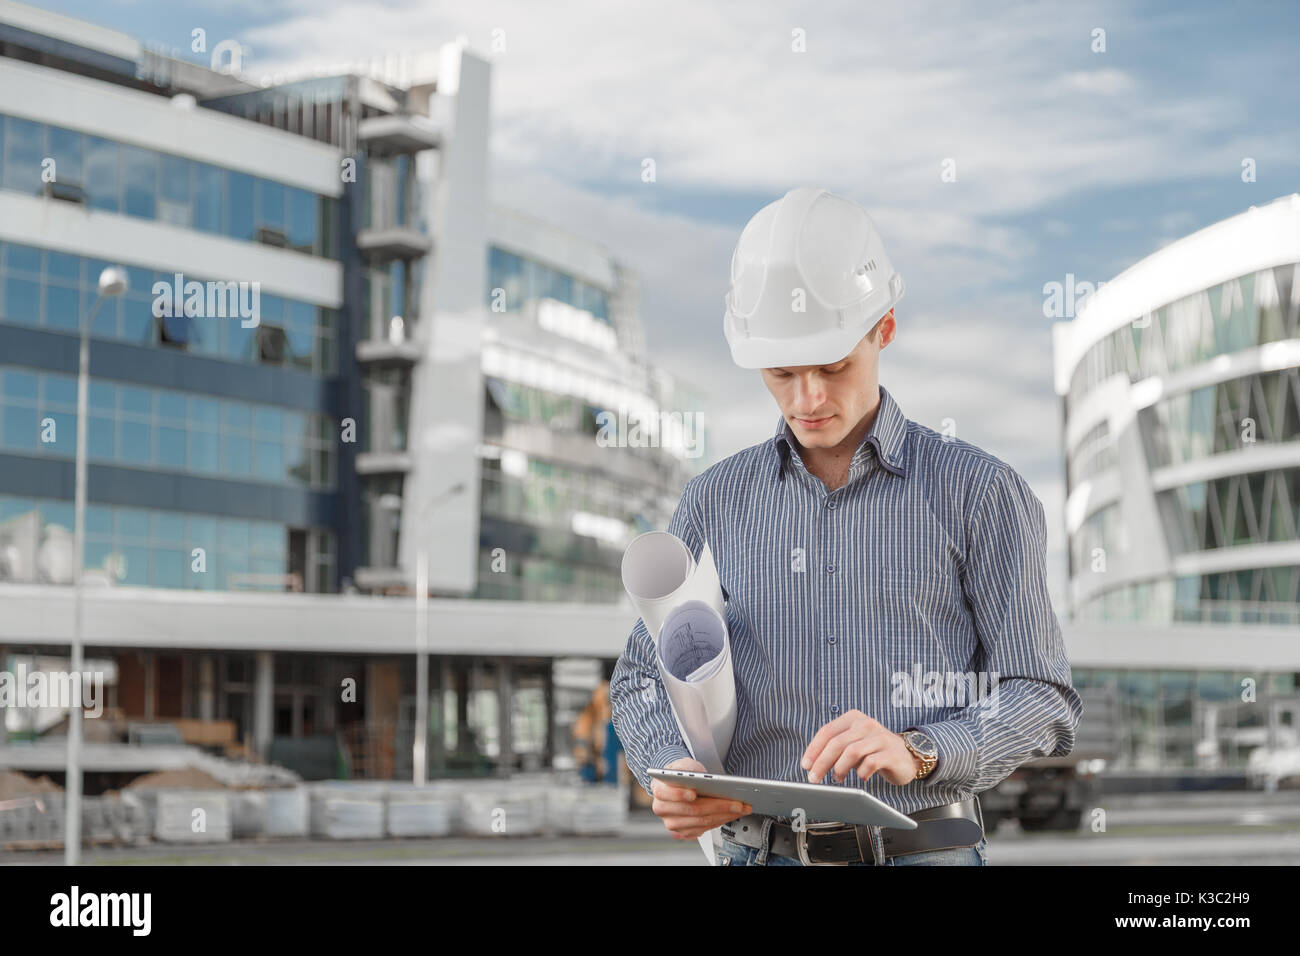 The concept of using new technologies as an engineer in the construction industry. - Stock Image